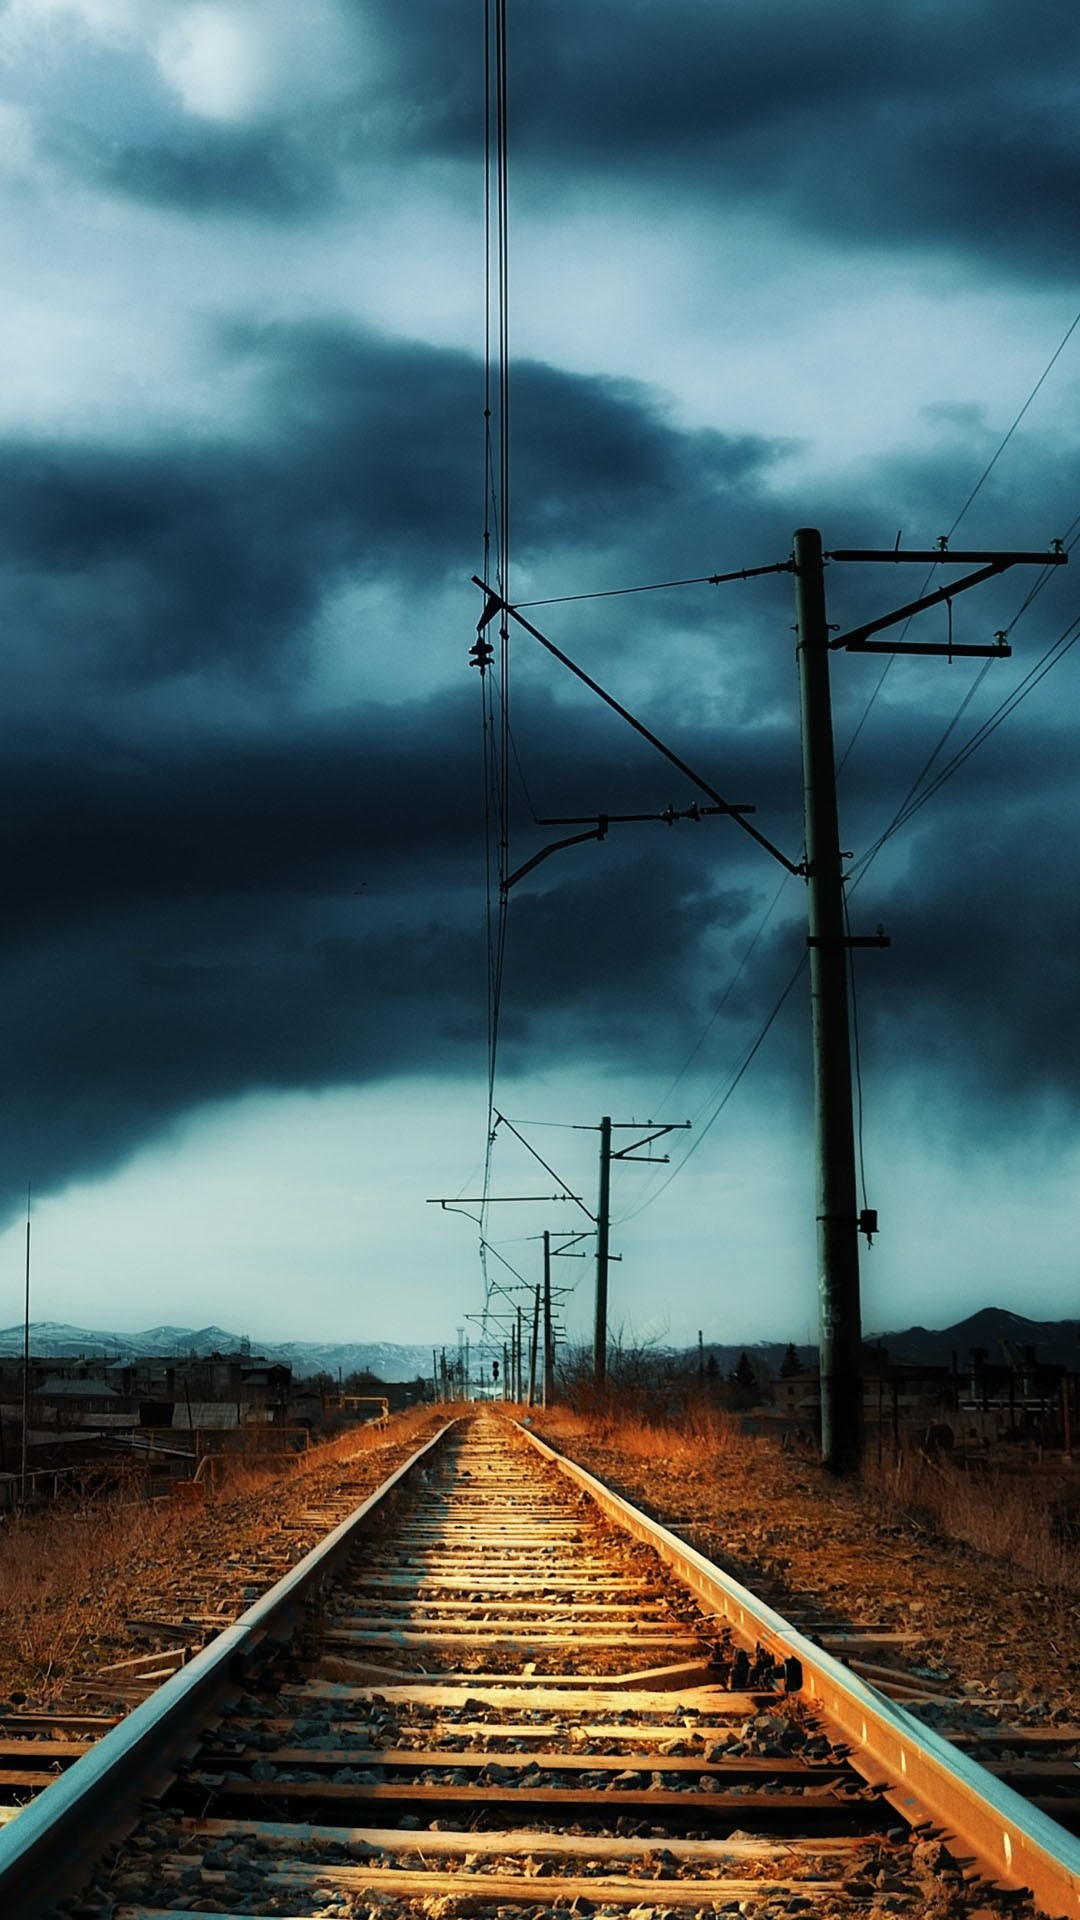 Hd train tracks wallpaper 57 images - Hd images download ...